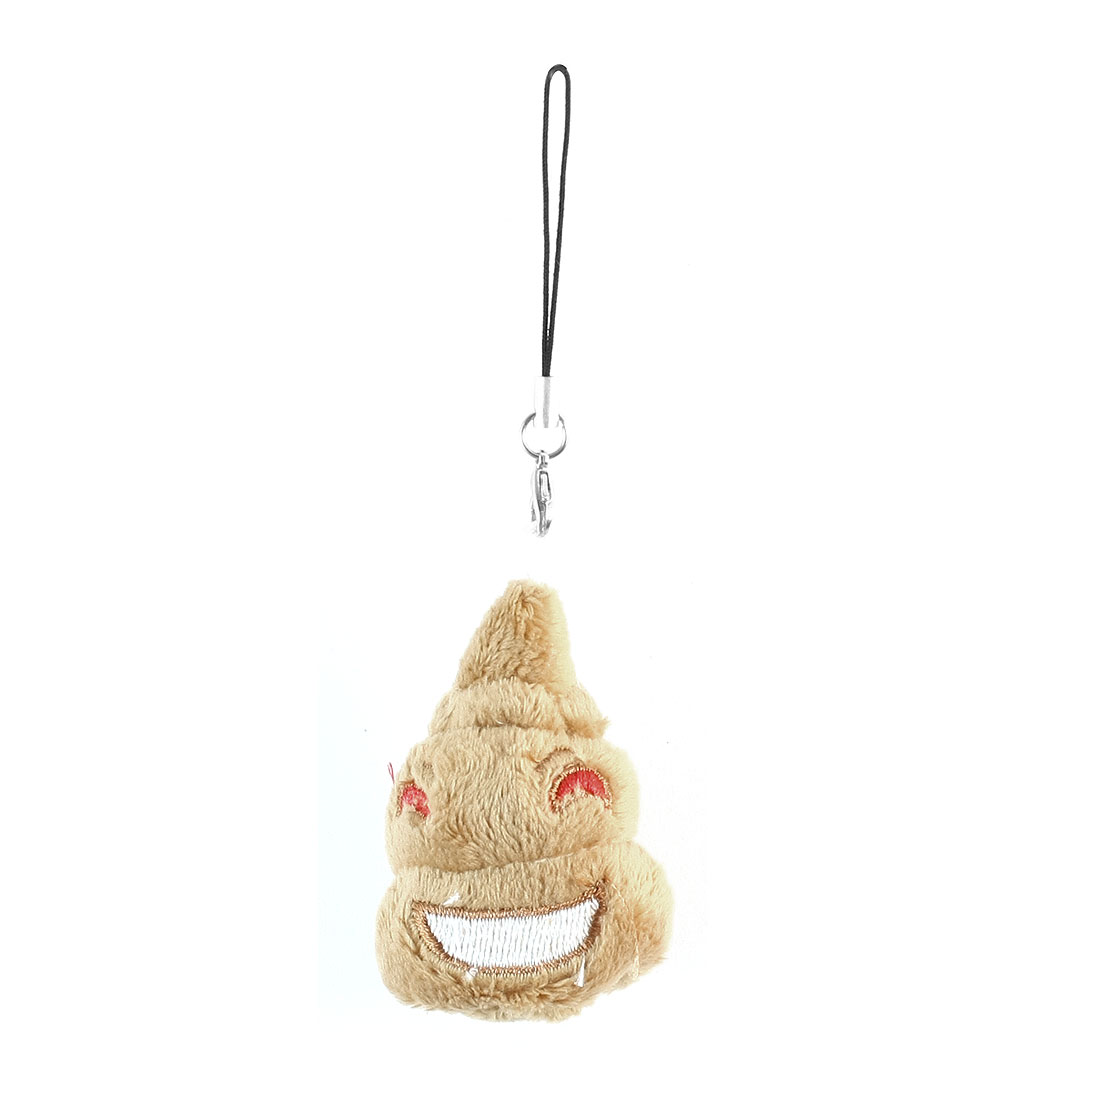 Camel Color Stuffed Cotton Poo Toy Doll Cell Phone Pendant Charm